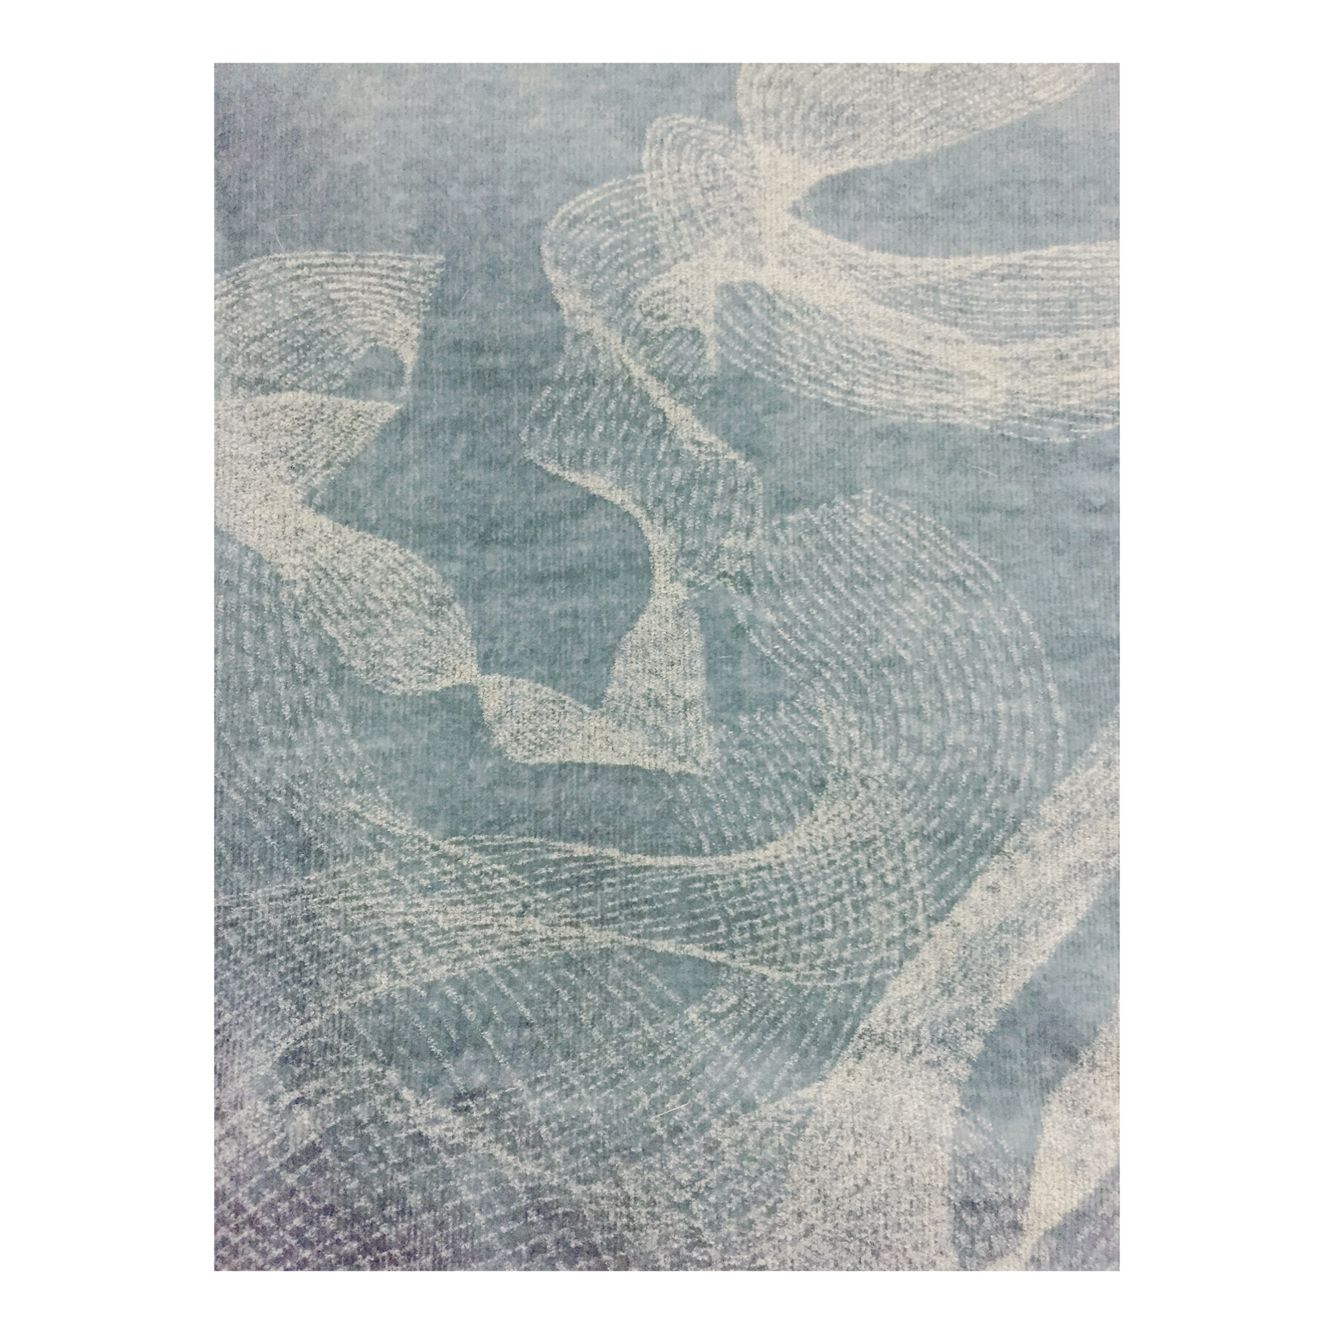 Etched stitch line detailing onto crushed velvet explores the effect of linear movement upon the fabrics surface; dependent on the direction of light.